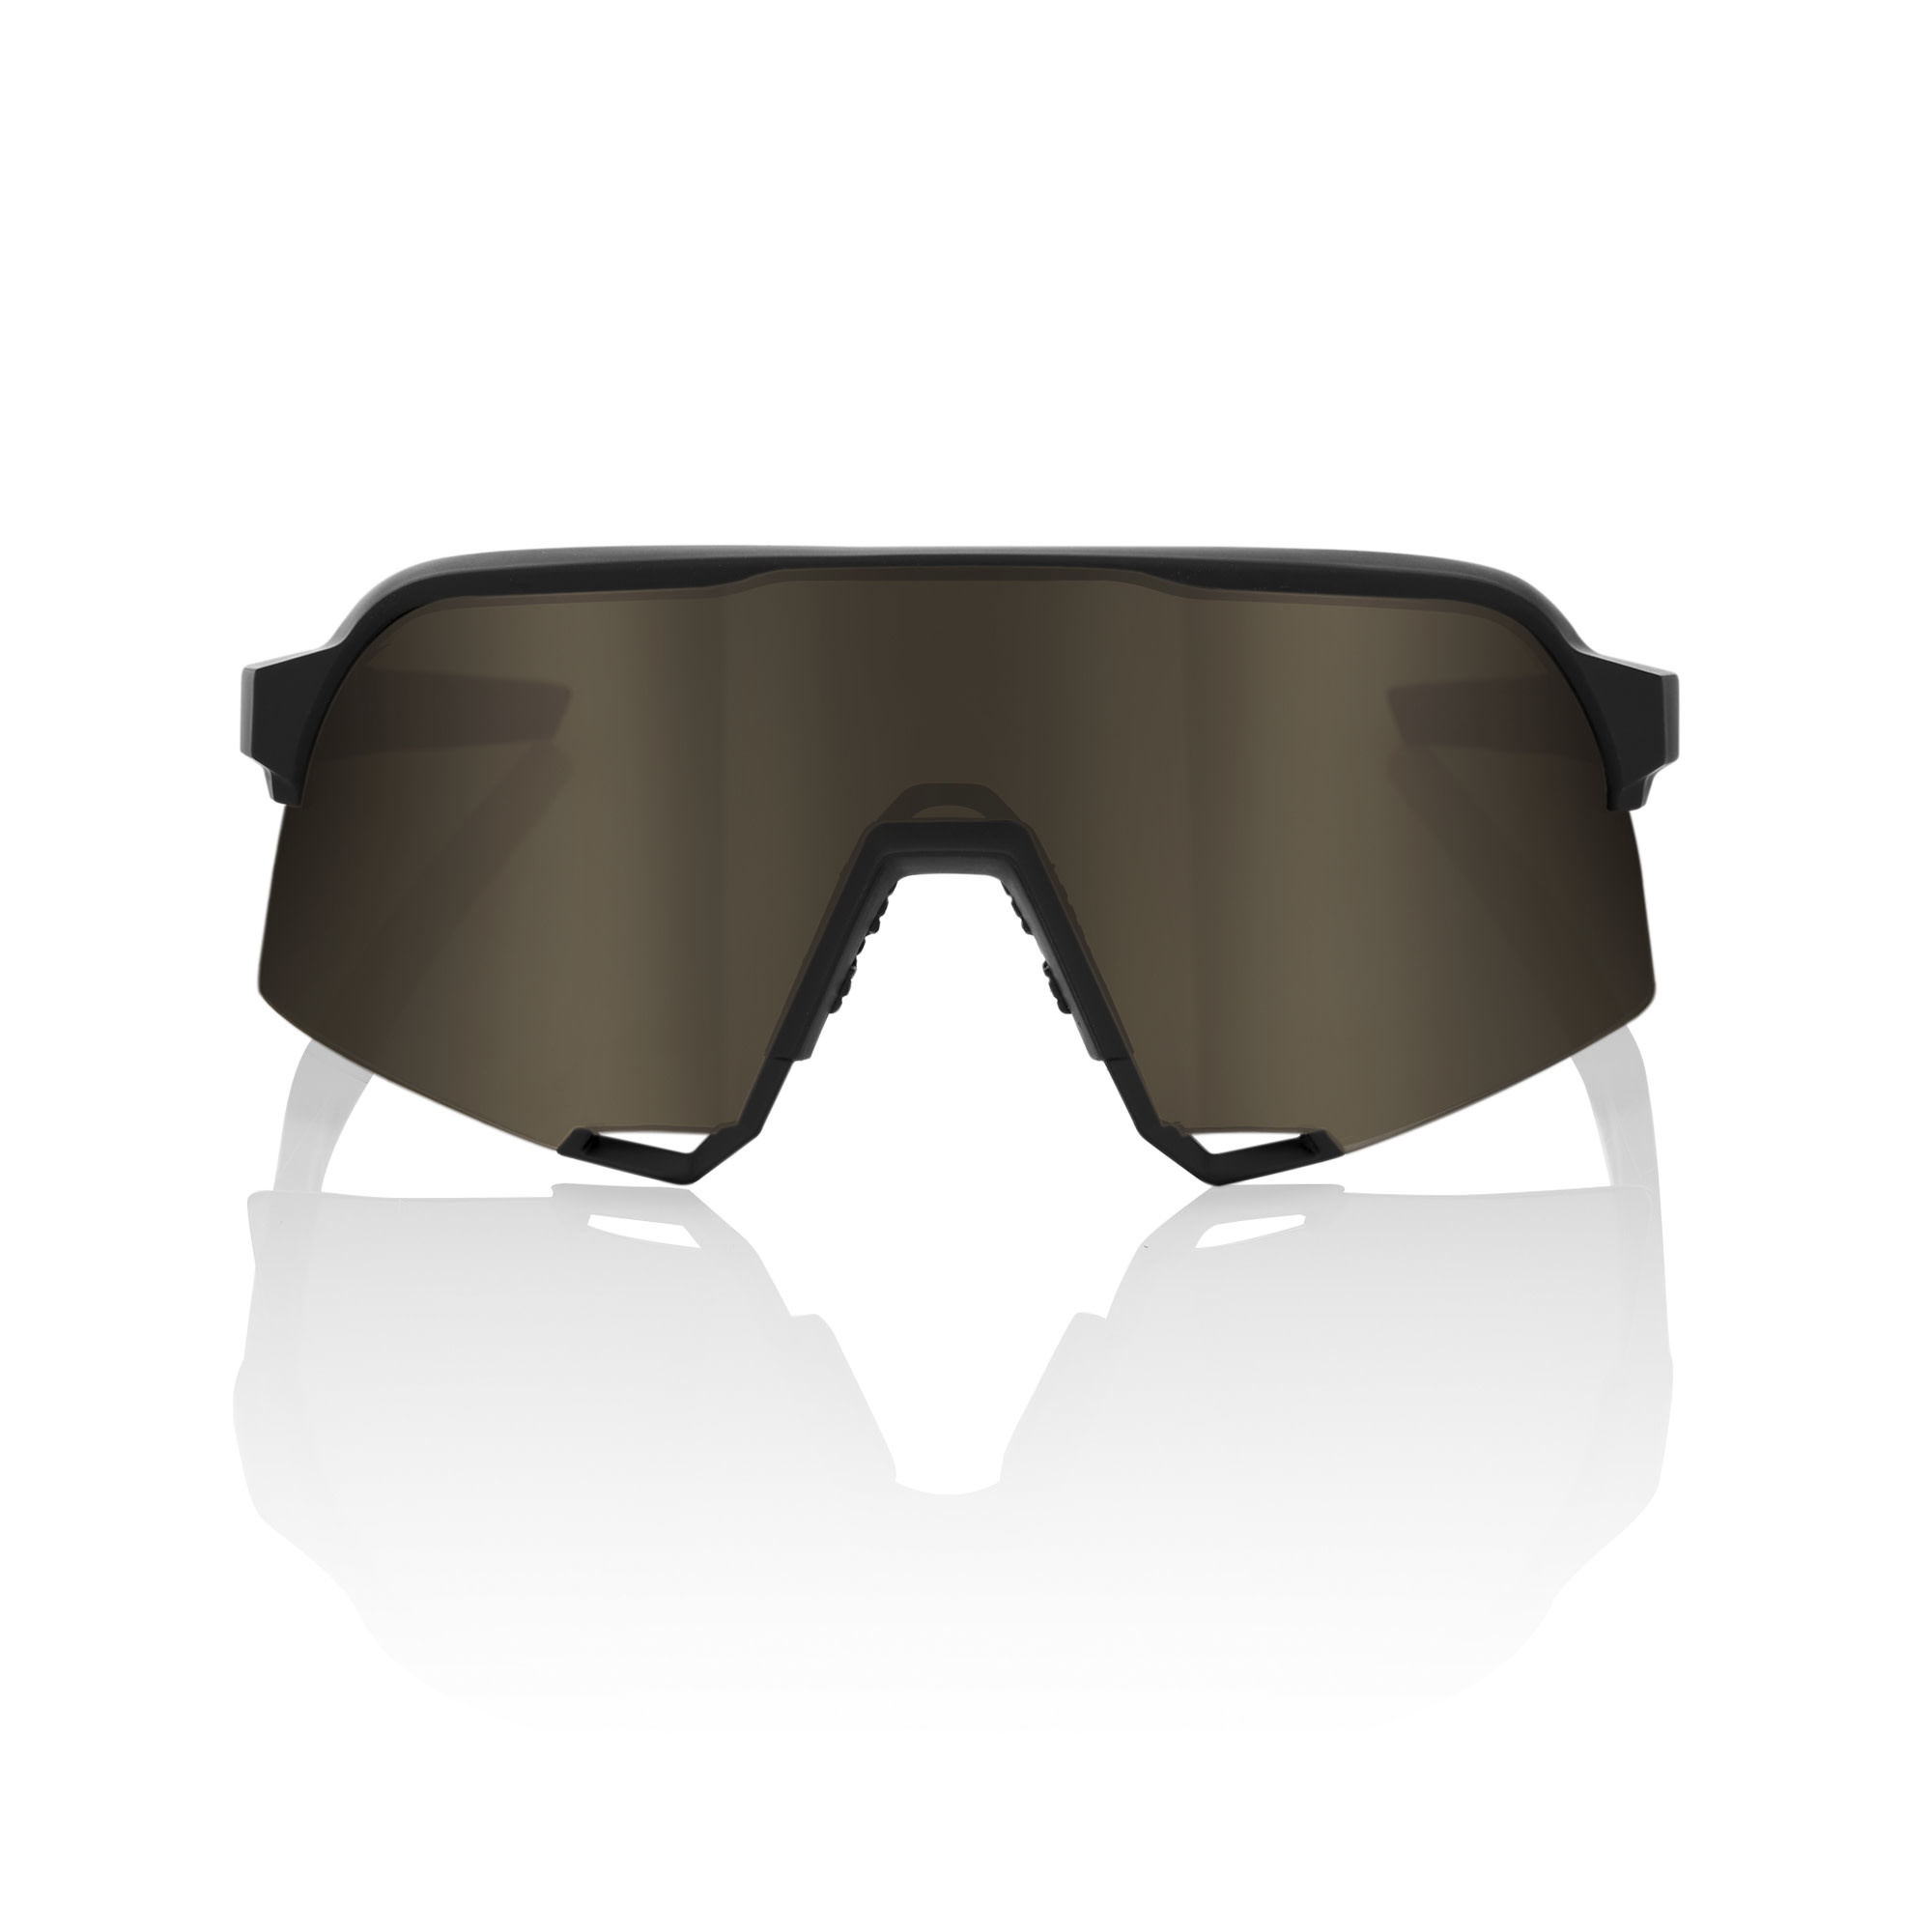 S3 Soft Tact Black Soft Gold Lens-3